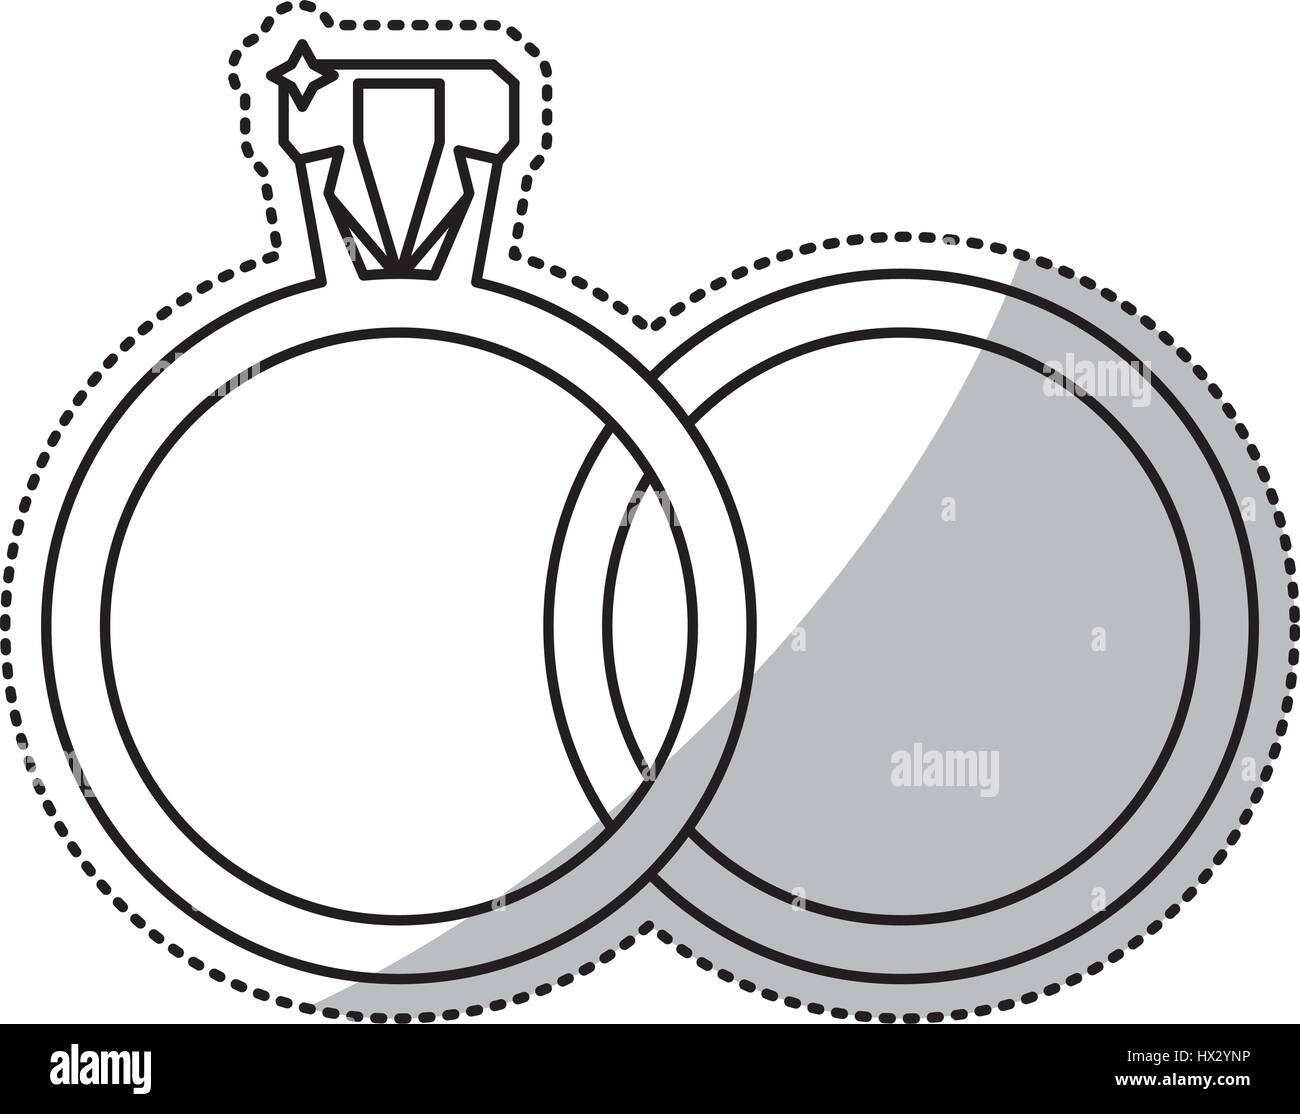 Wedding Rings Jewelry Outline Stock Vector Art Illustration